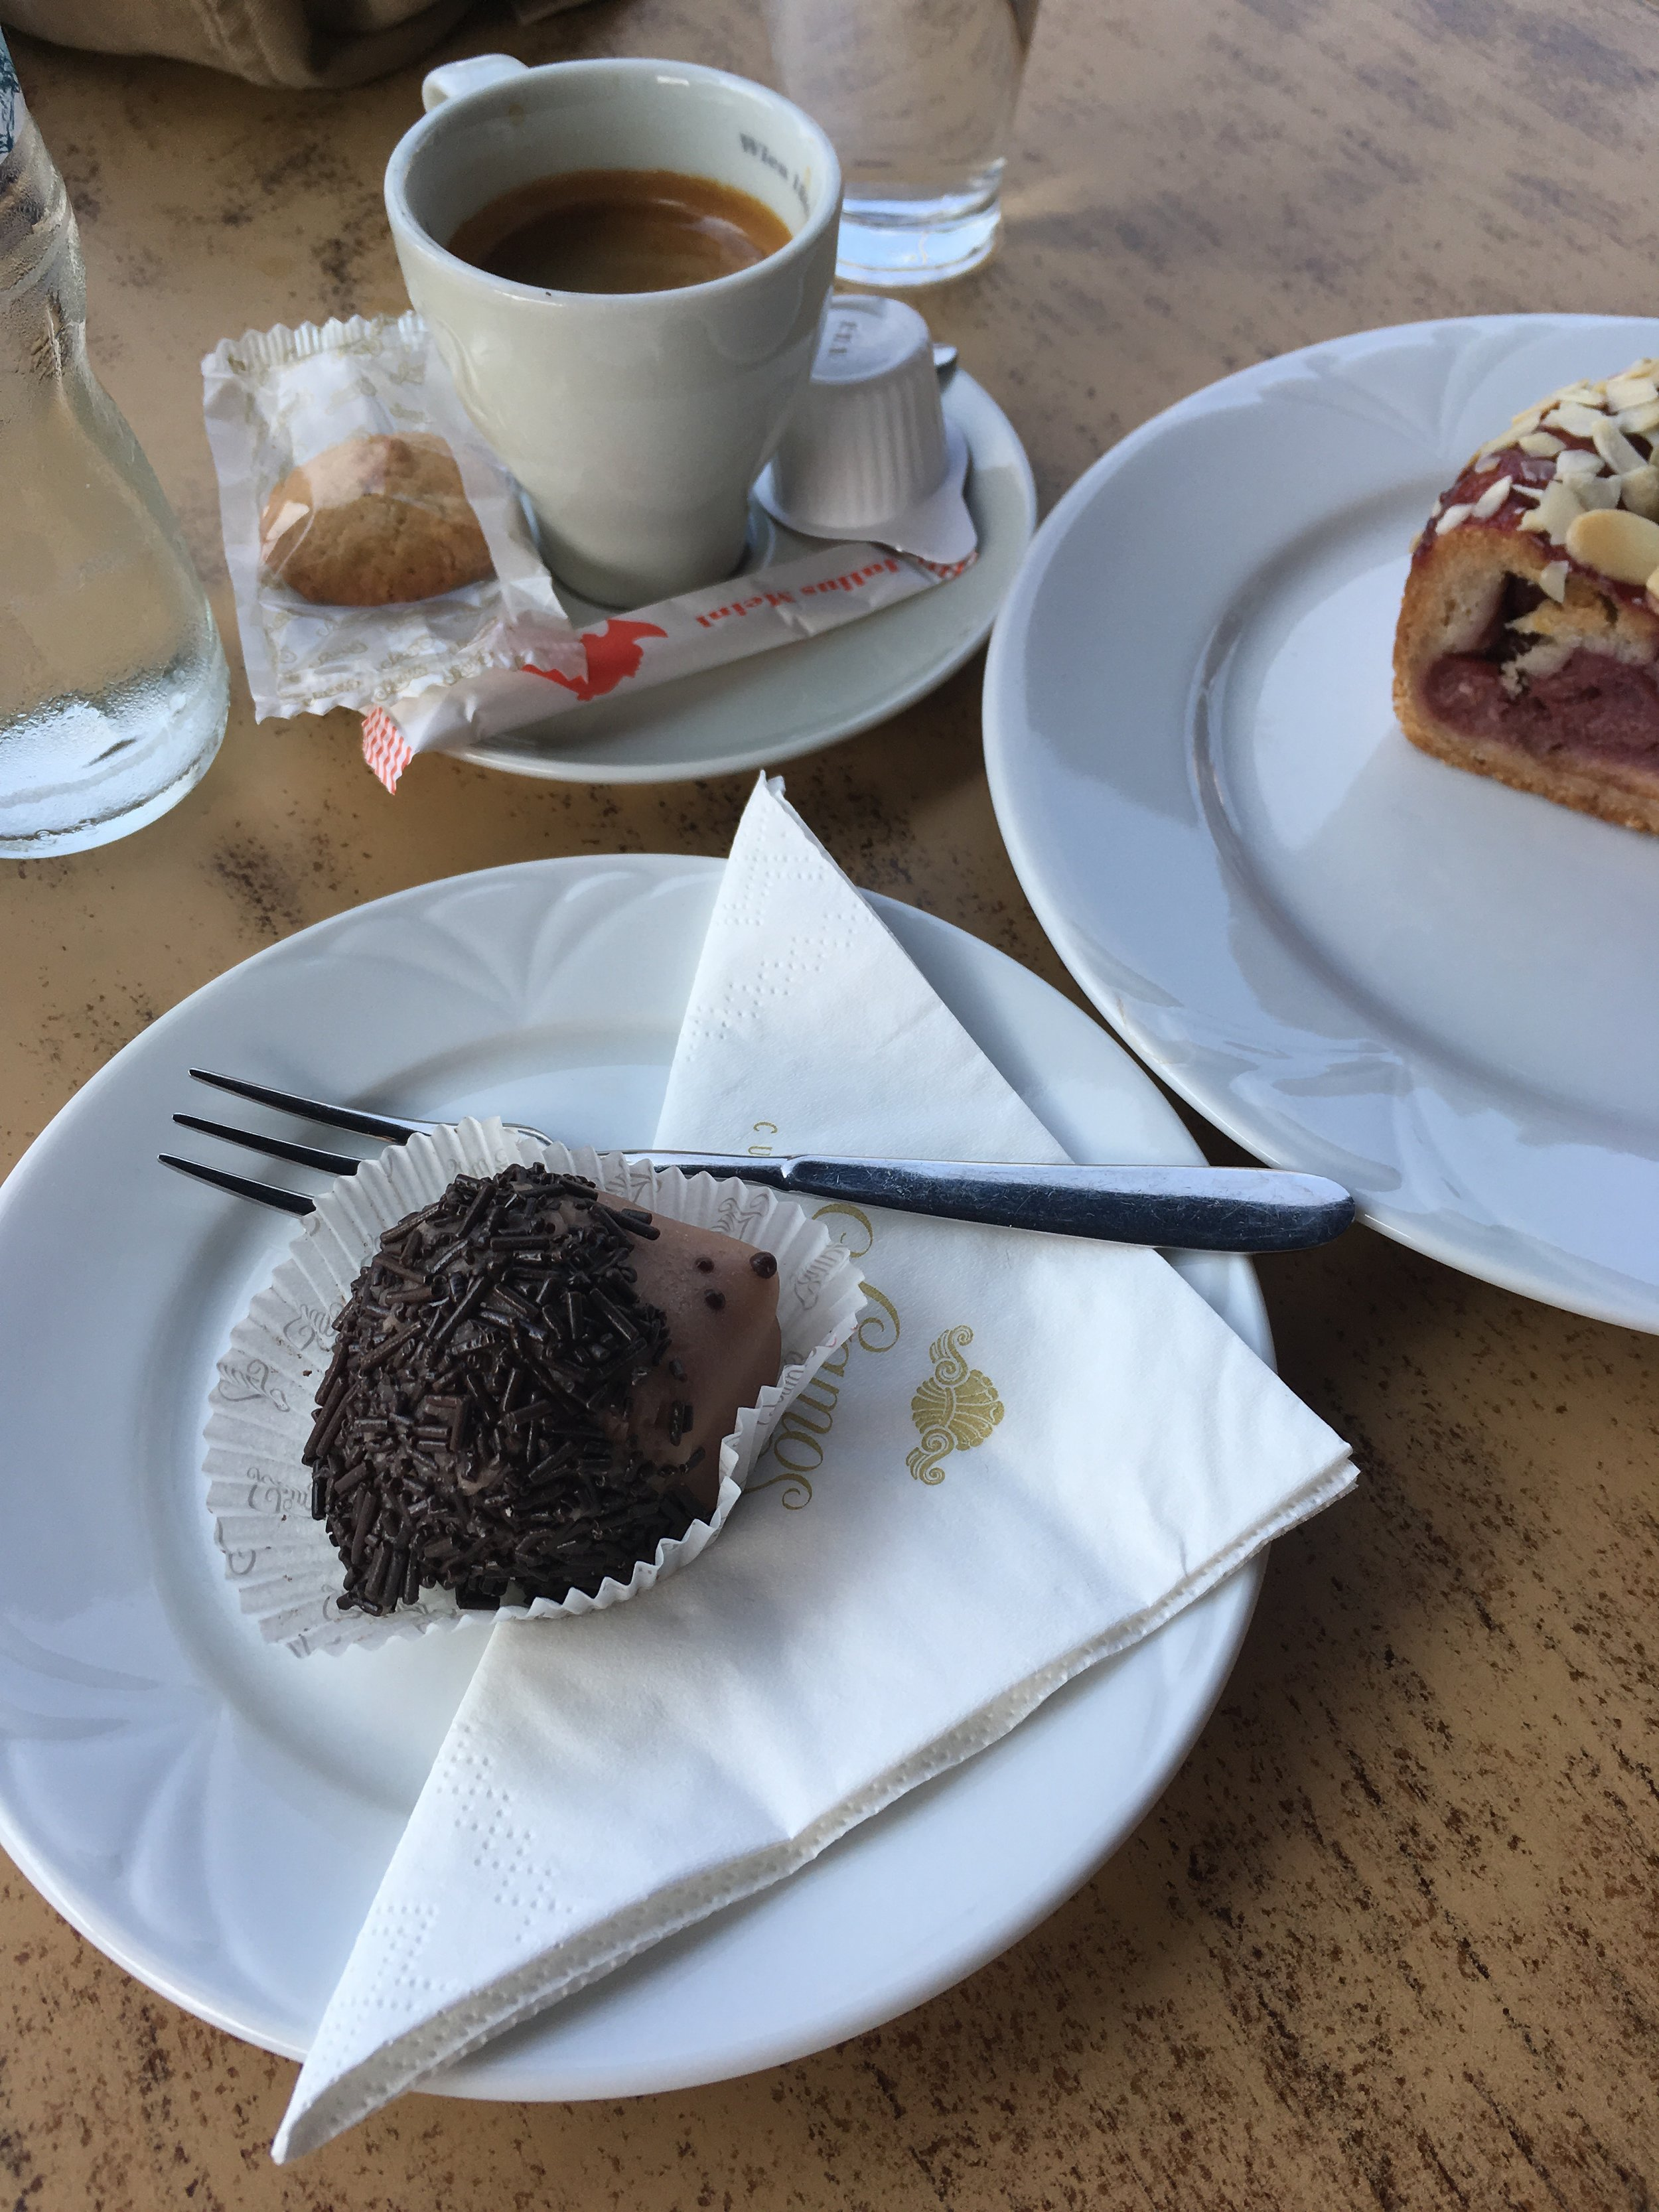 Here is a classic form of entertainment - sitting in a cafe, enjoying a sweet treat and a coffee while indulging in one of my favourite pastimes, people watching! This is one of my favourite cafes in Esztergom, Hungary, it's called  Szamos,  they are famous for their beautiful marzipan creations.